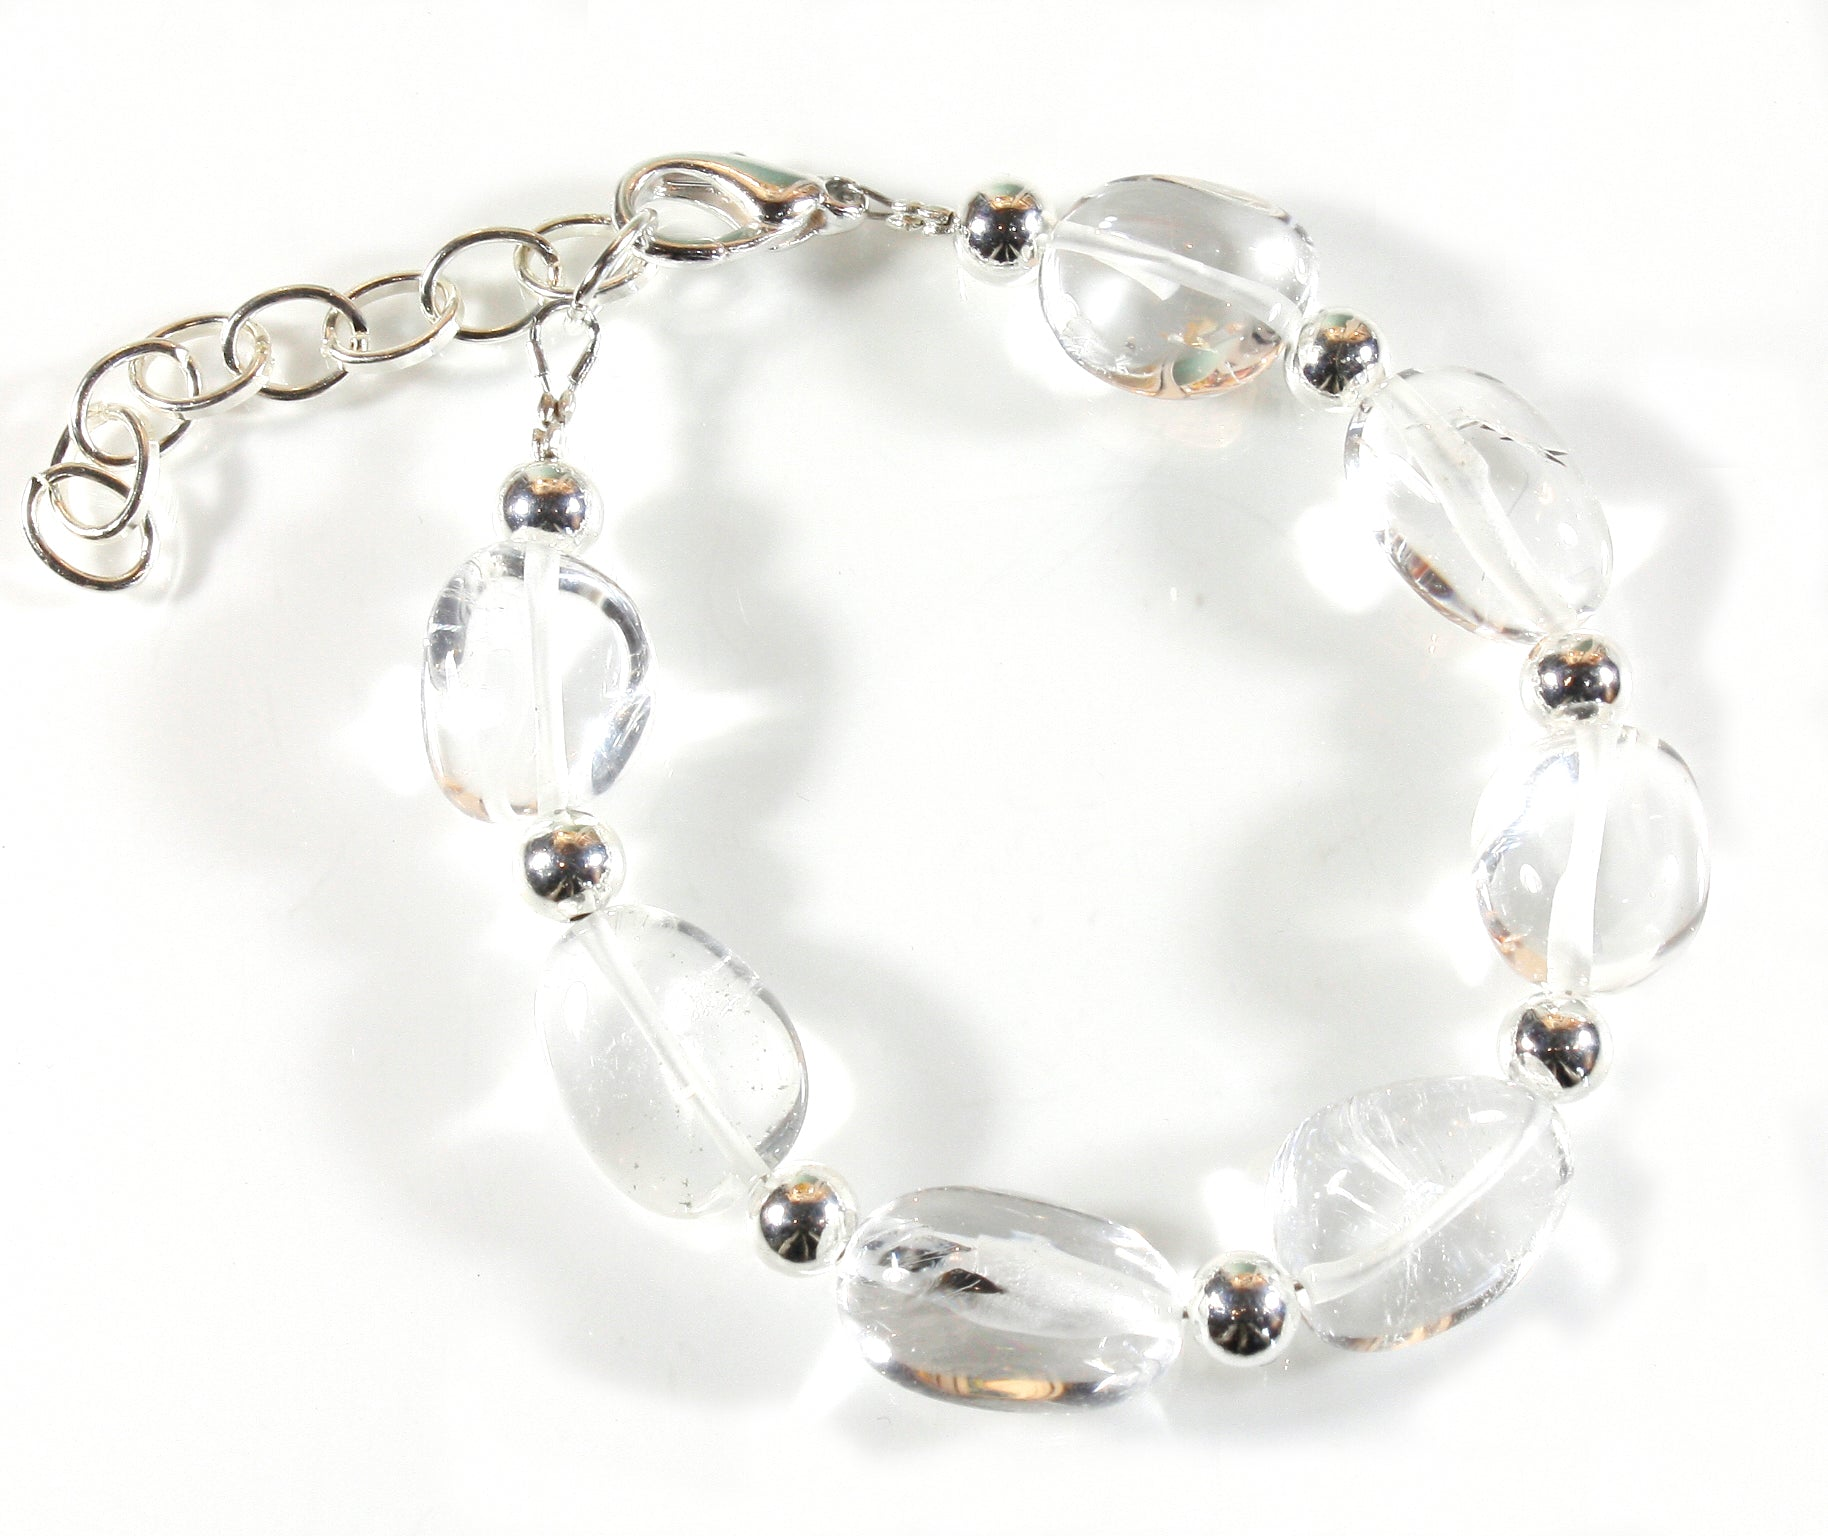 """Crystal Clear"" Perfectly Clear Quartz Crystal Bracelet in a Nugget Shapes"